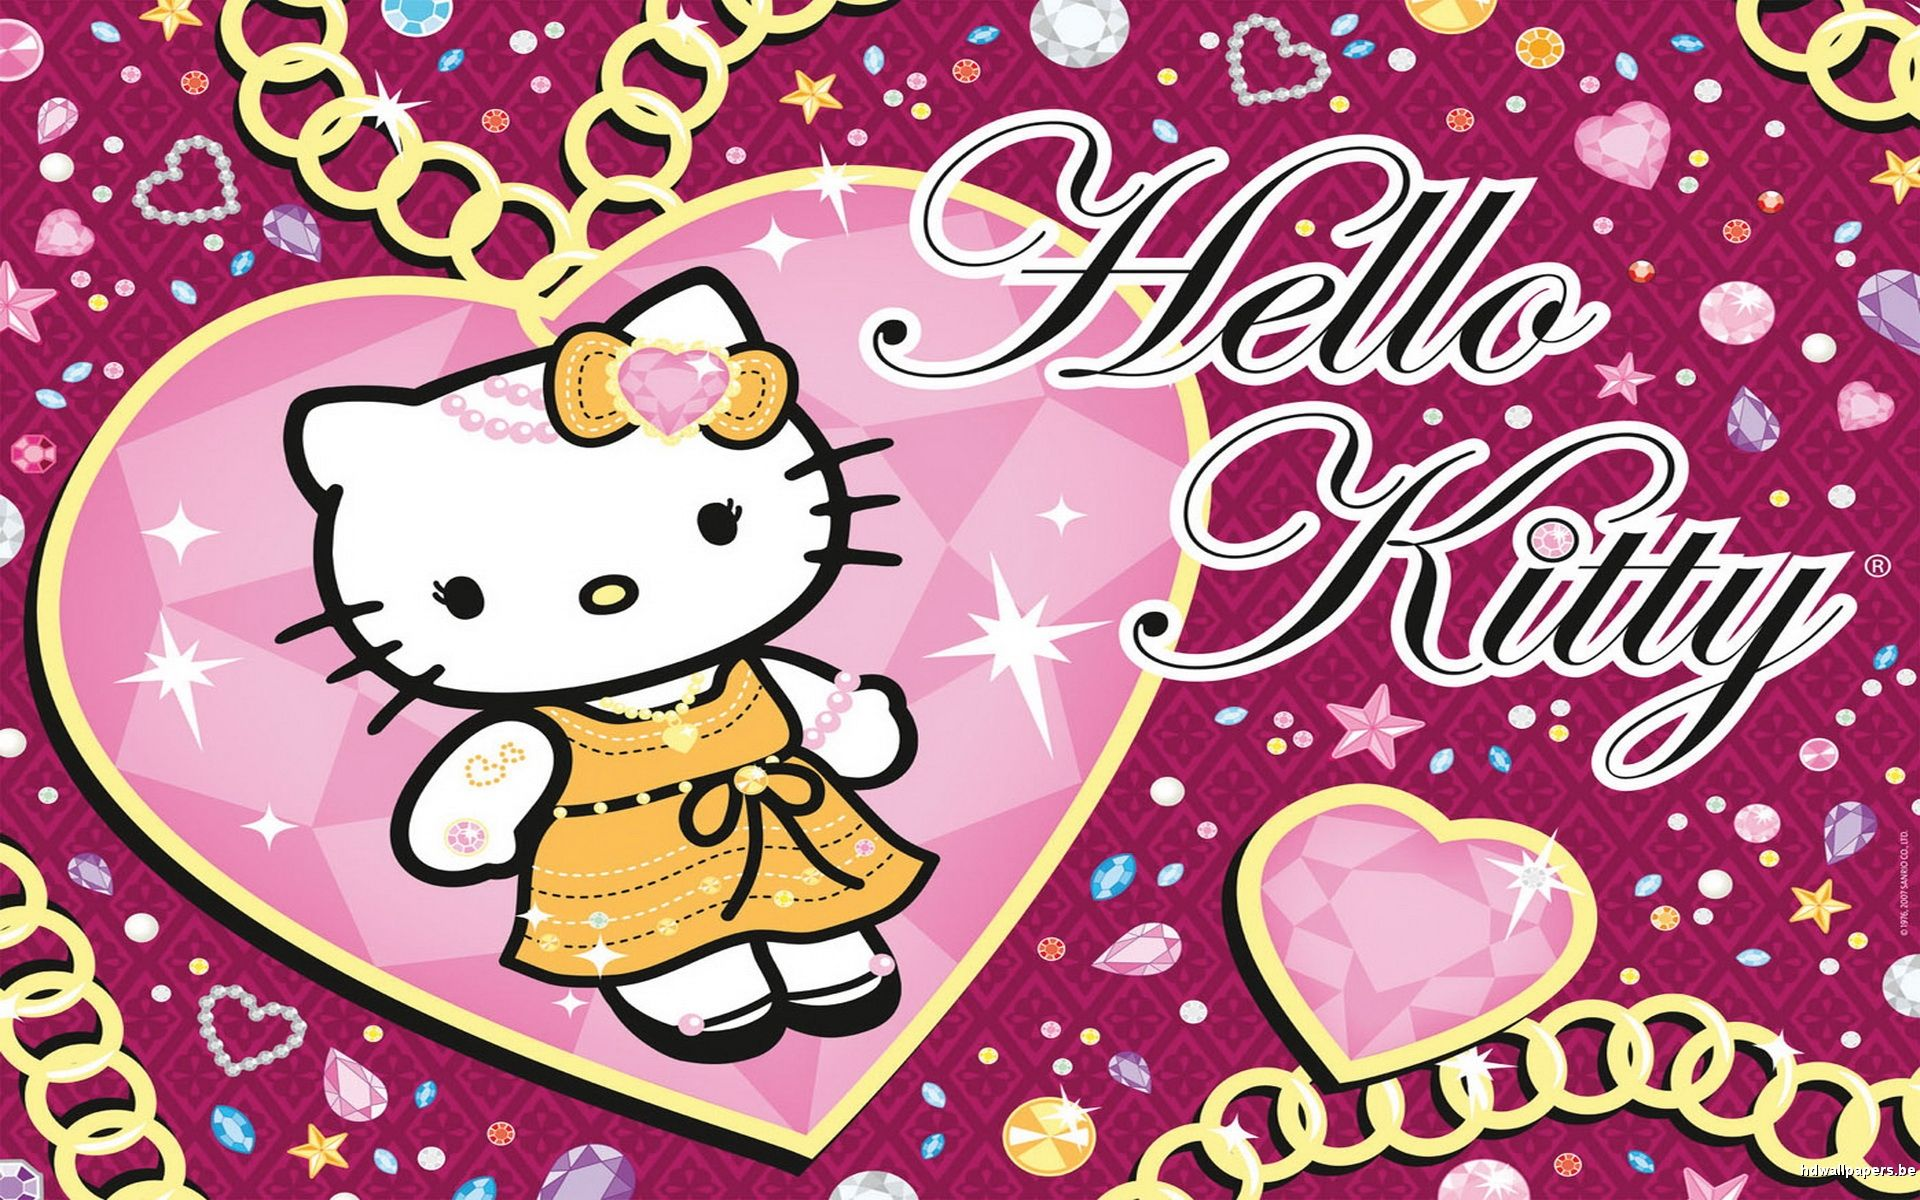 Good Wallpaper Hello Kitty Animated - 86b9acd8538f95193178d156913c0c67  Pic_869573.jpg